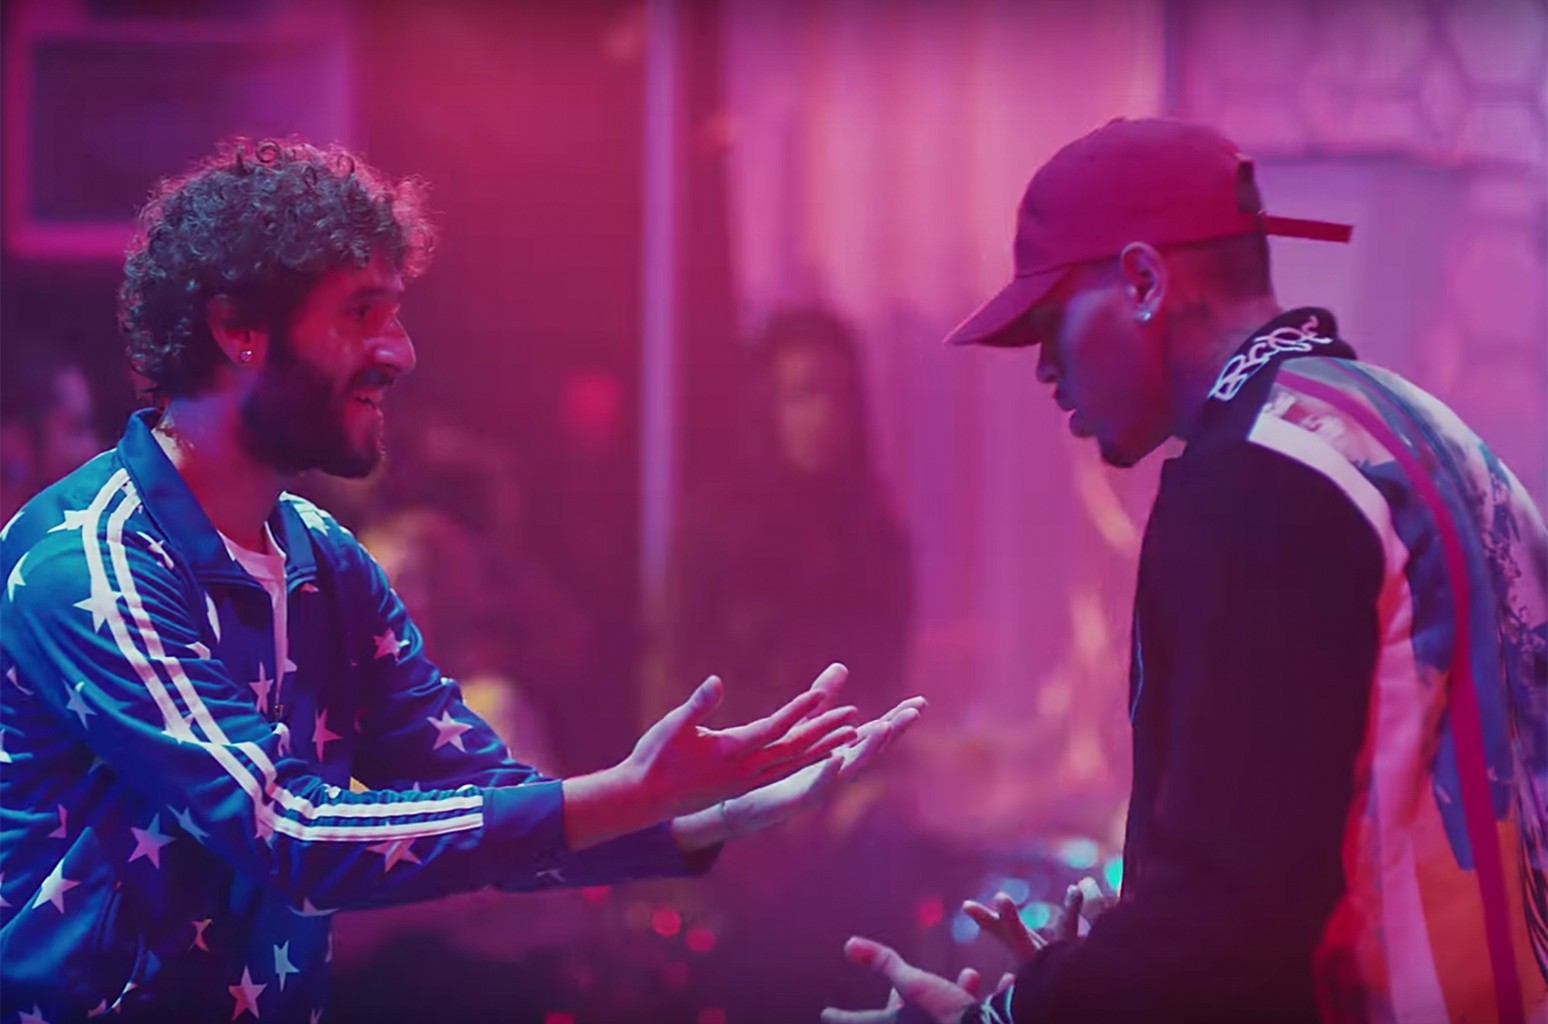 Lil Dicky - Freaky Friday feat. Chris Brown